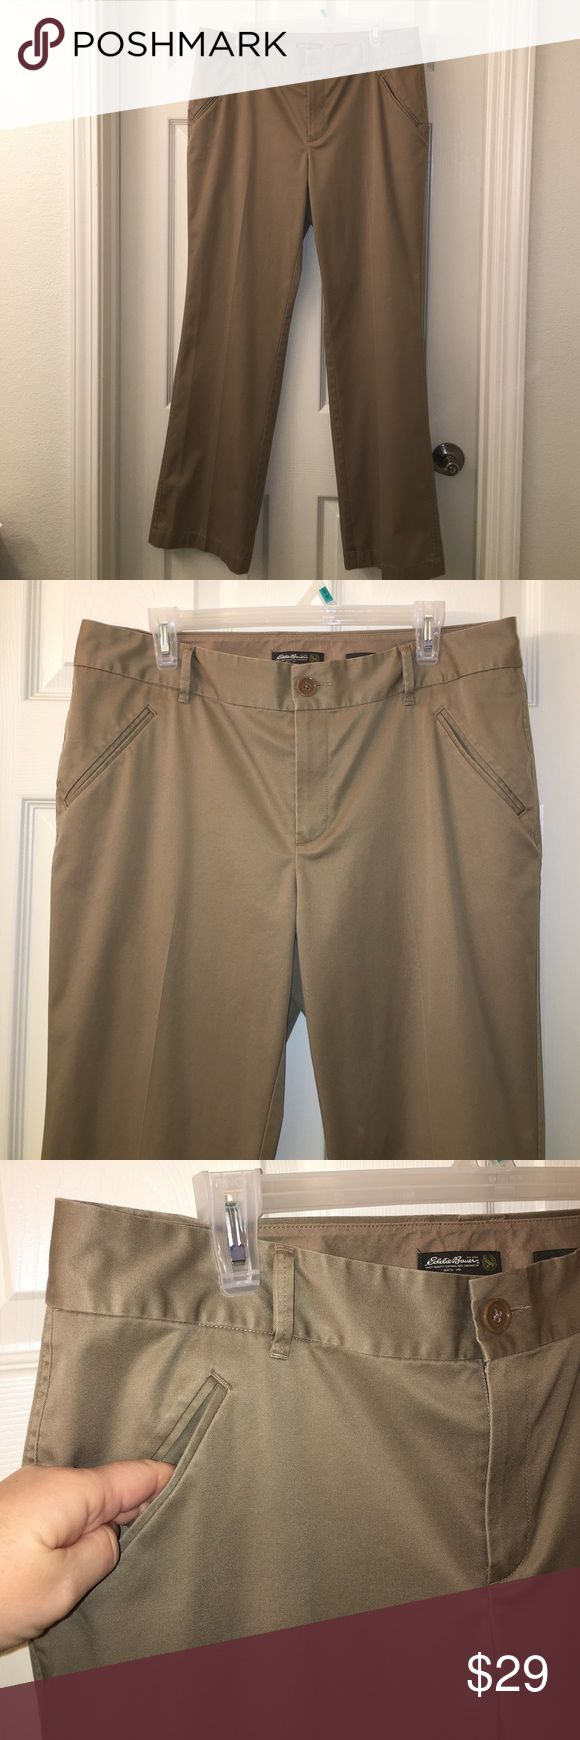 "Ladies EDDIE BAUER Khaki Trouser Pants sz 14 This is a pair of Ladies EDDIE BAUER Khaki Trouser Pants in a sz 14! Waist measures 36"" and inseam measures 30""❤good used condition! Happy poshing friends! Eddie Bauer Pants Trousers"